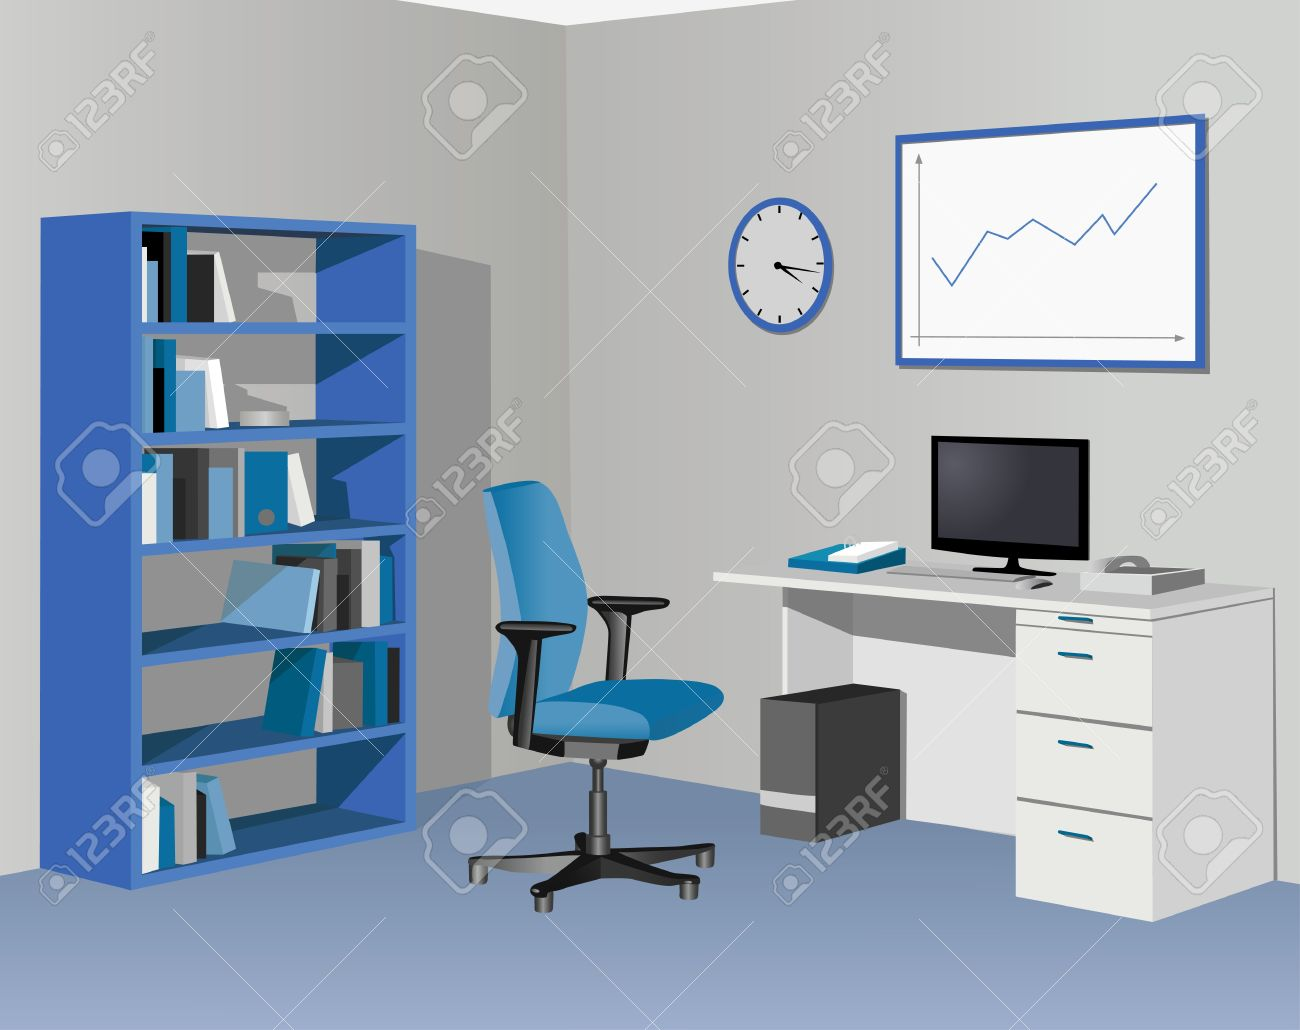 office room clipart 8 | Clipart Station